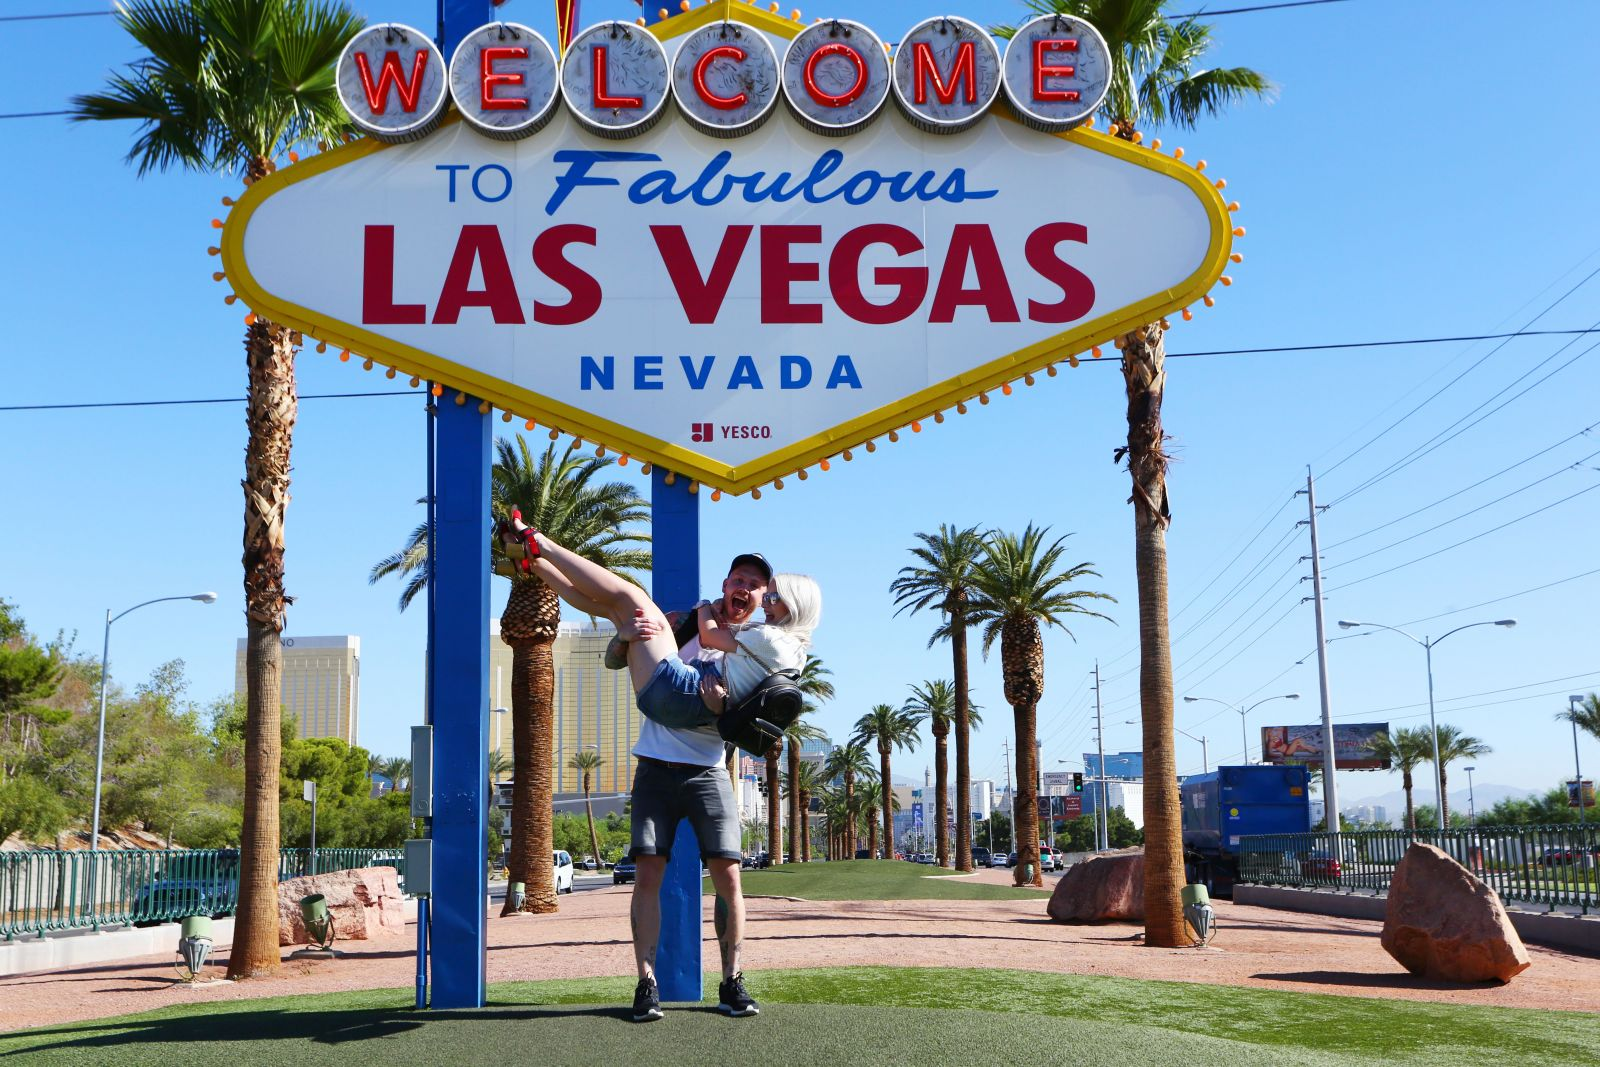 Stock footage welcome to fabulous las vegas sign with flashing lights - Find